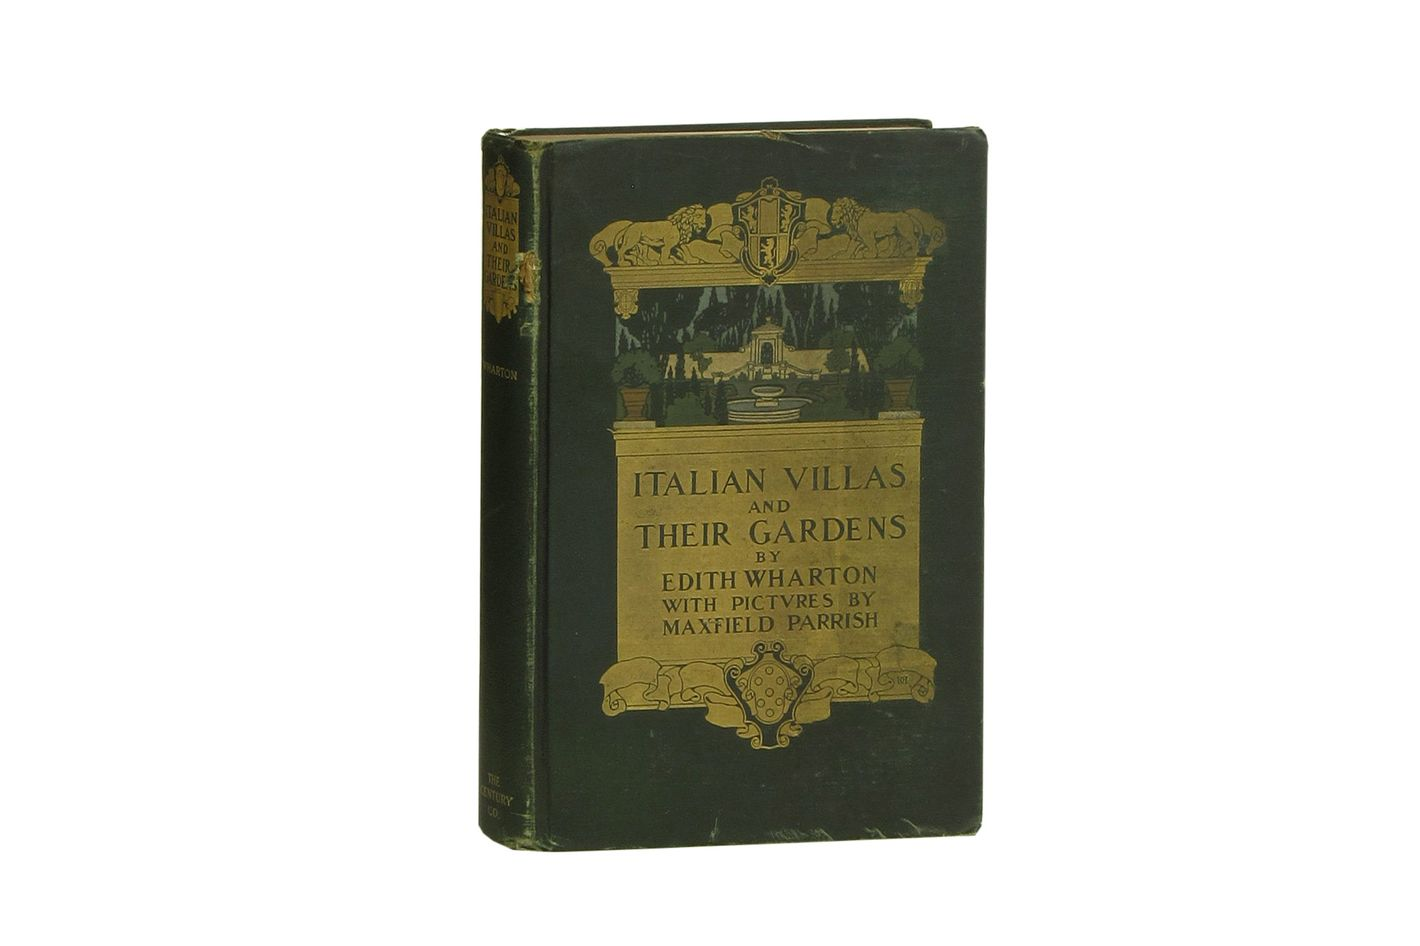 The best vintage coffee table books you can buy on amazon italian villas and their gardens by edith wharton and maxfield parrish 1904 geotapseo Gallery